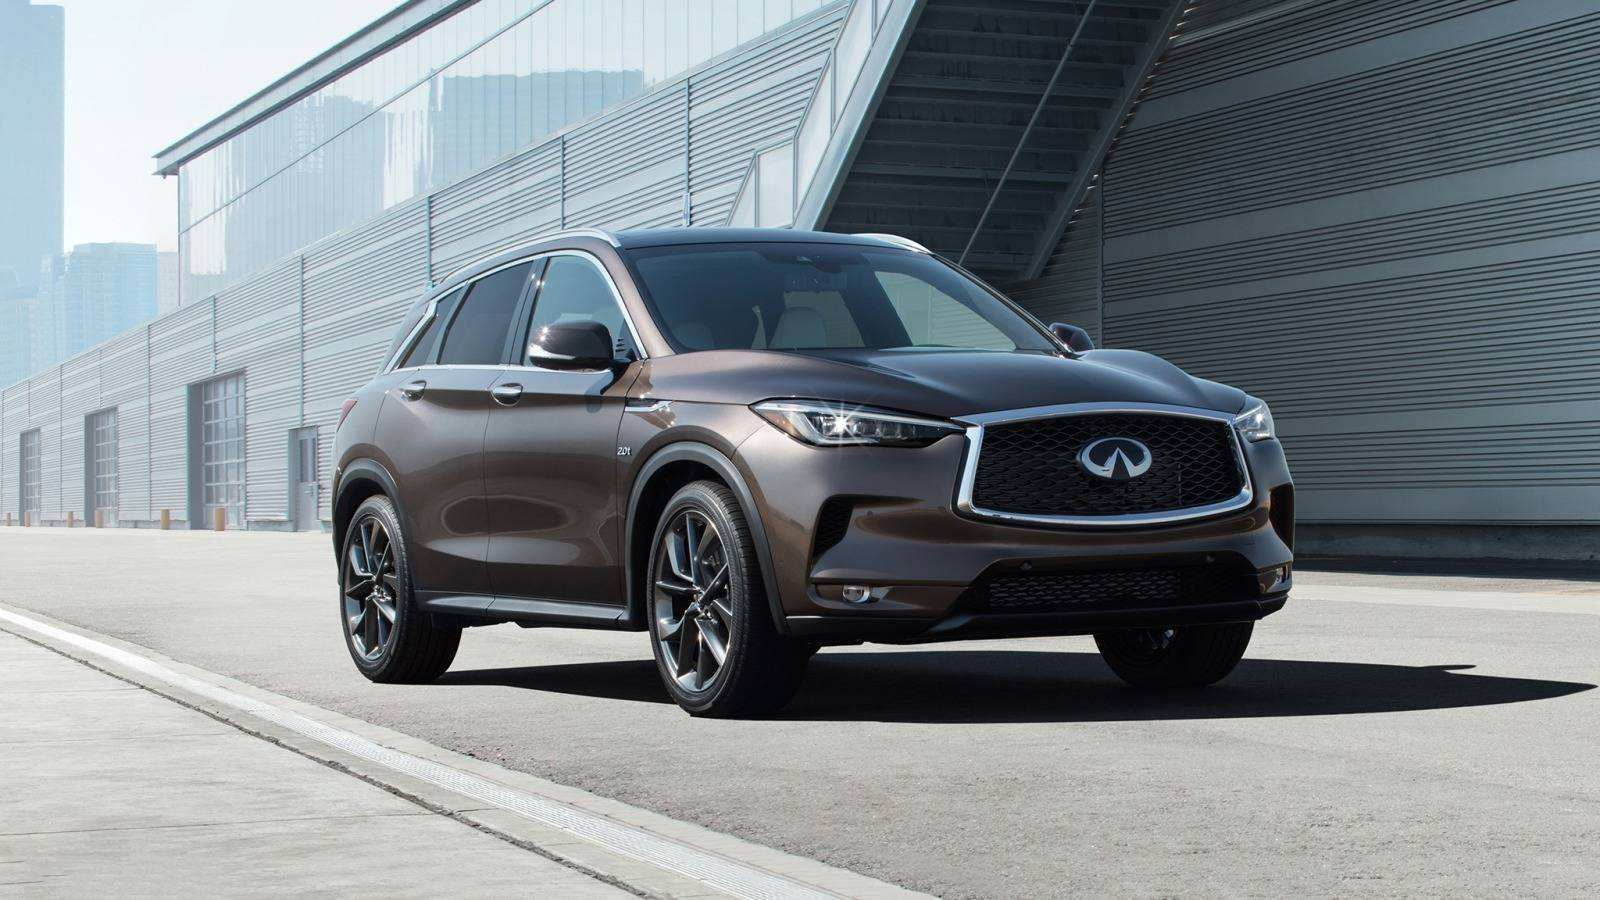 15 All New 2019 Infiniti Suv Models Photos